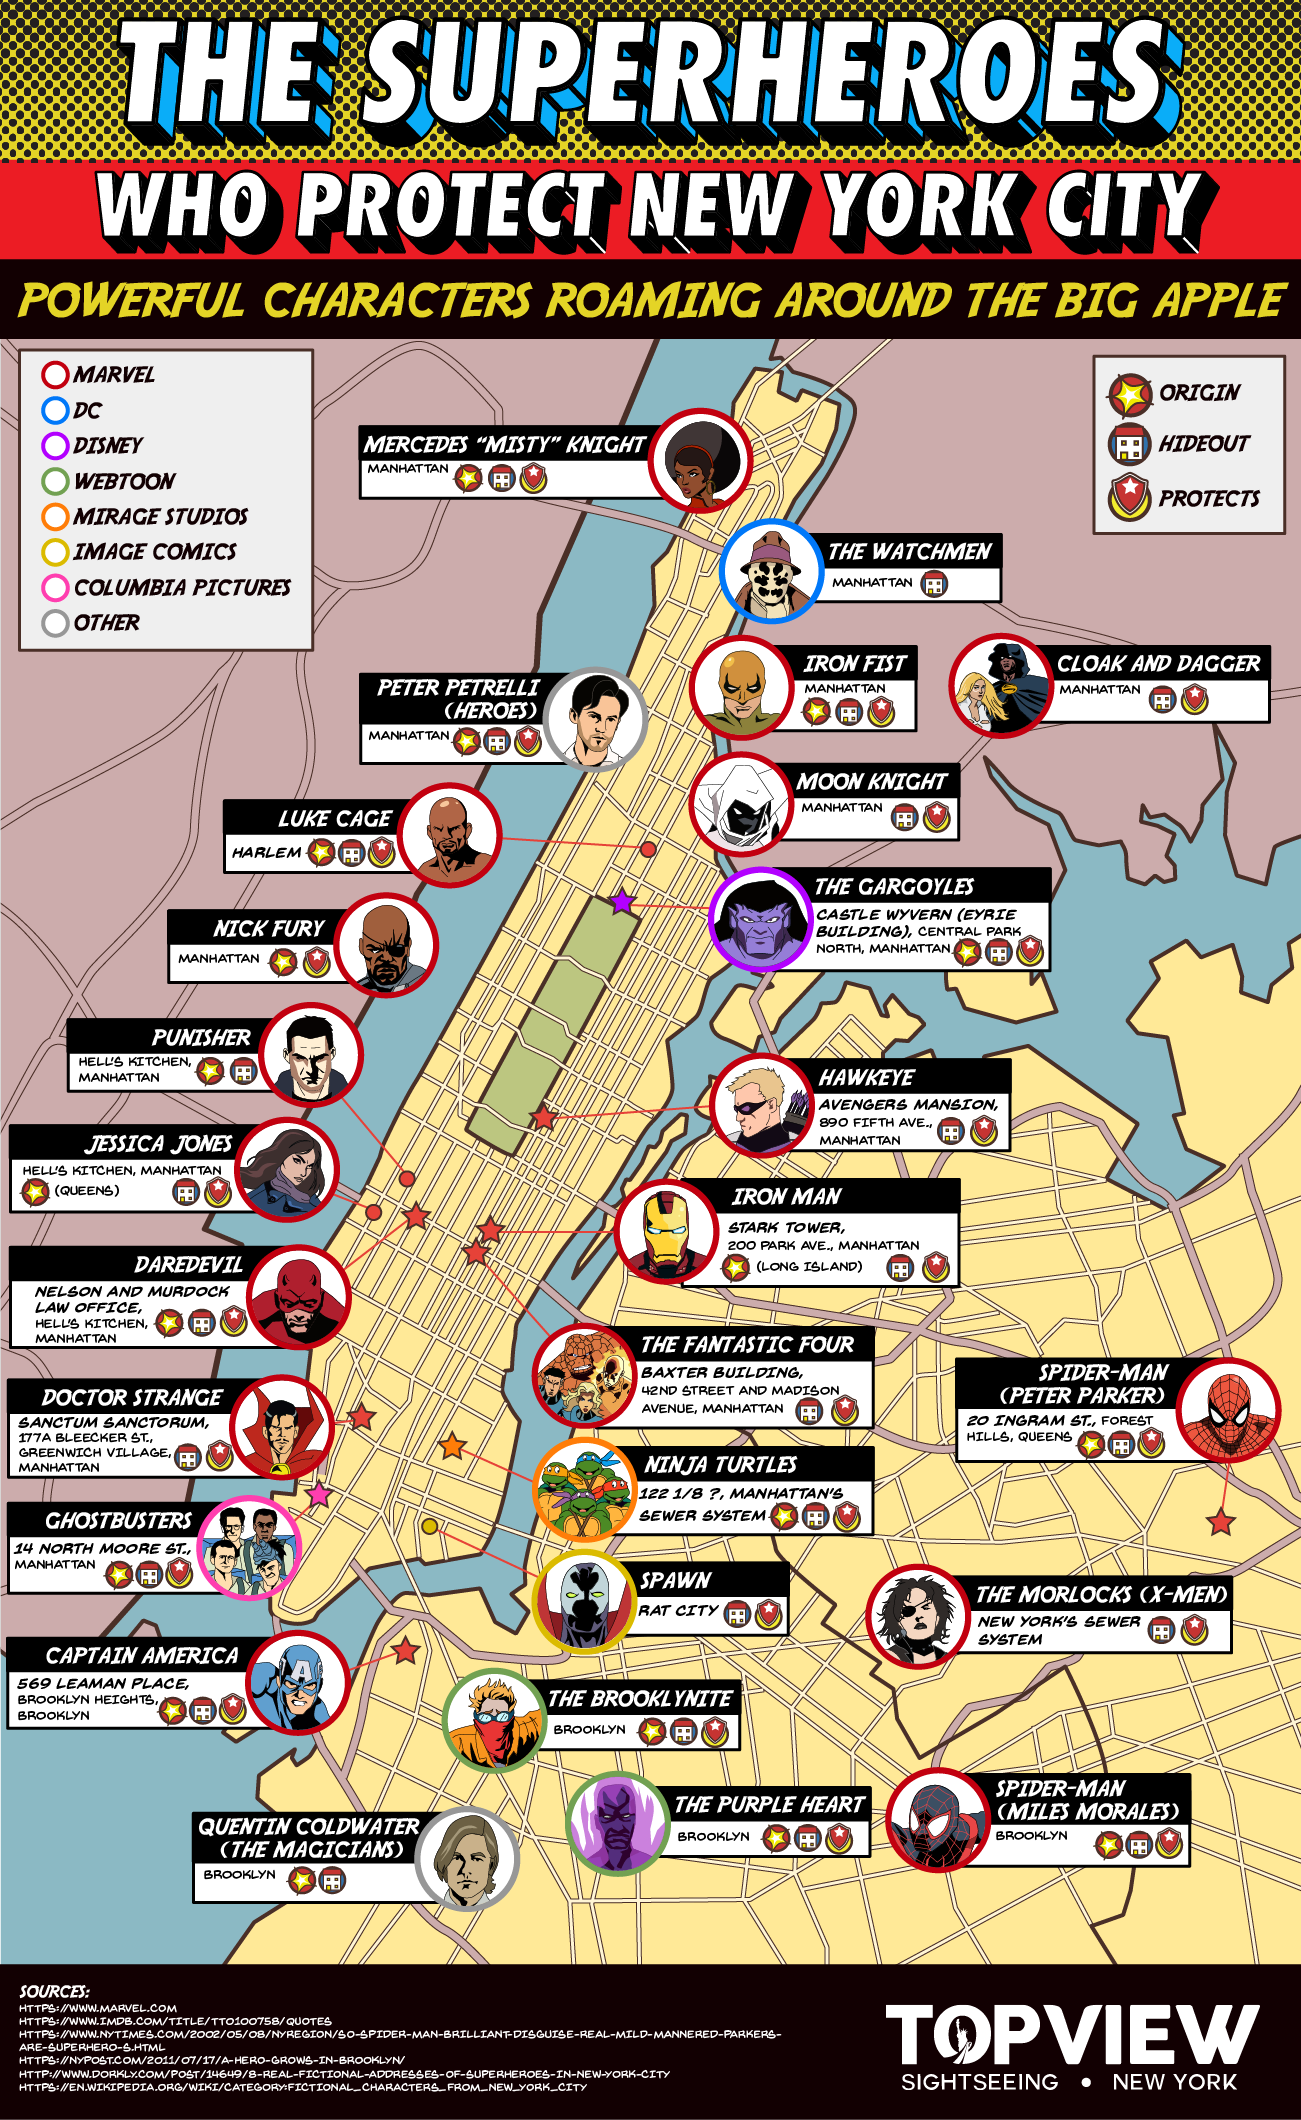 The Superheroes Who Protect NYC #Infographic